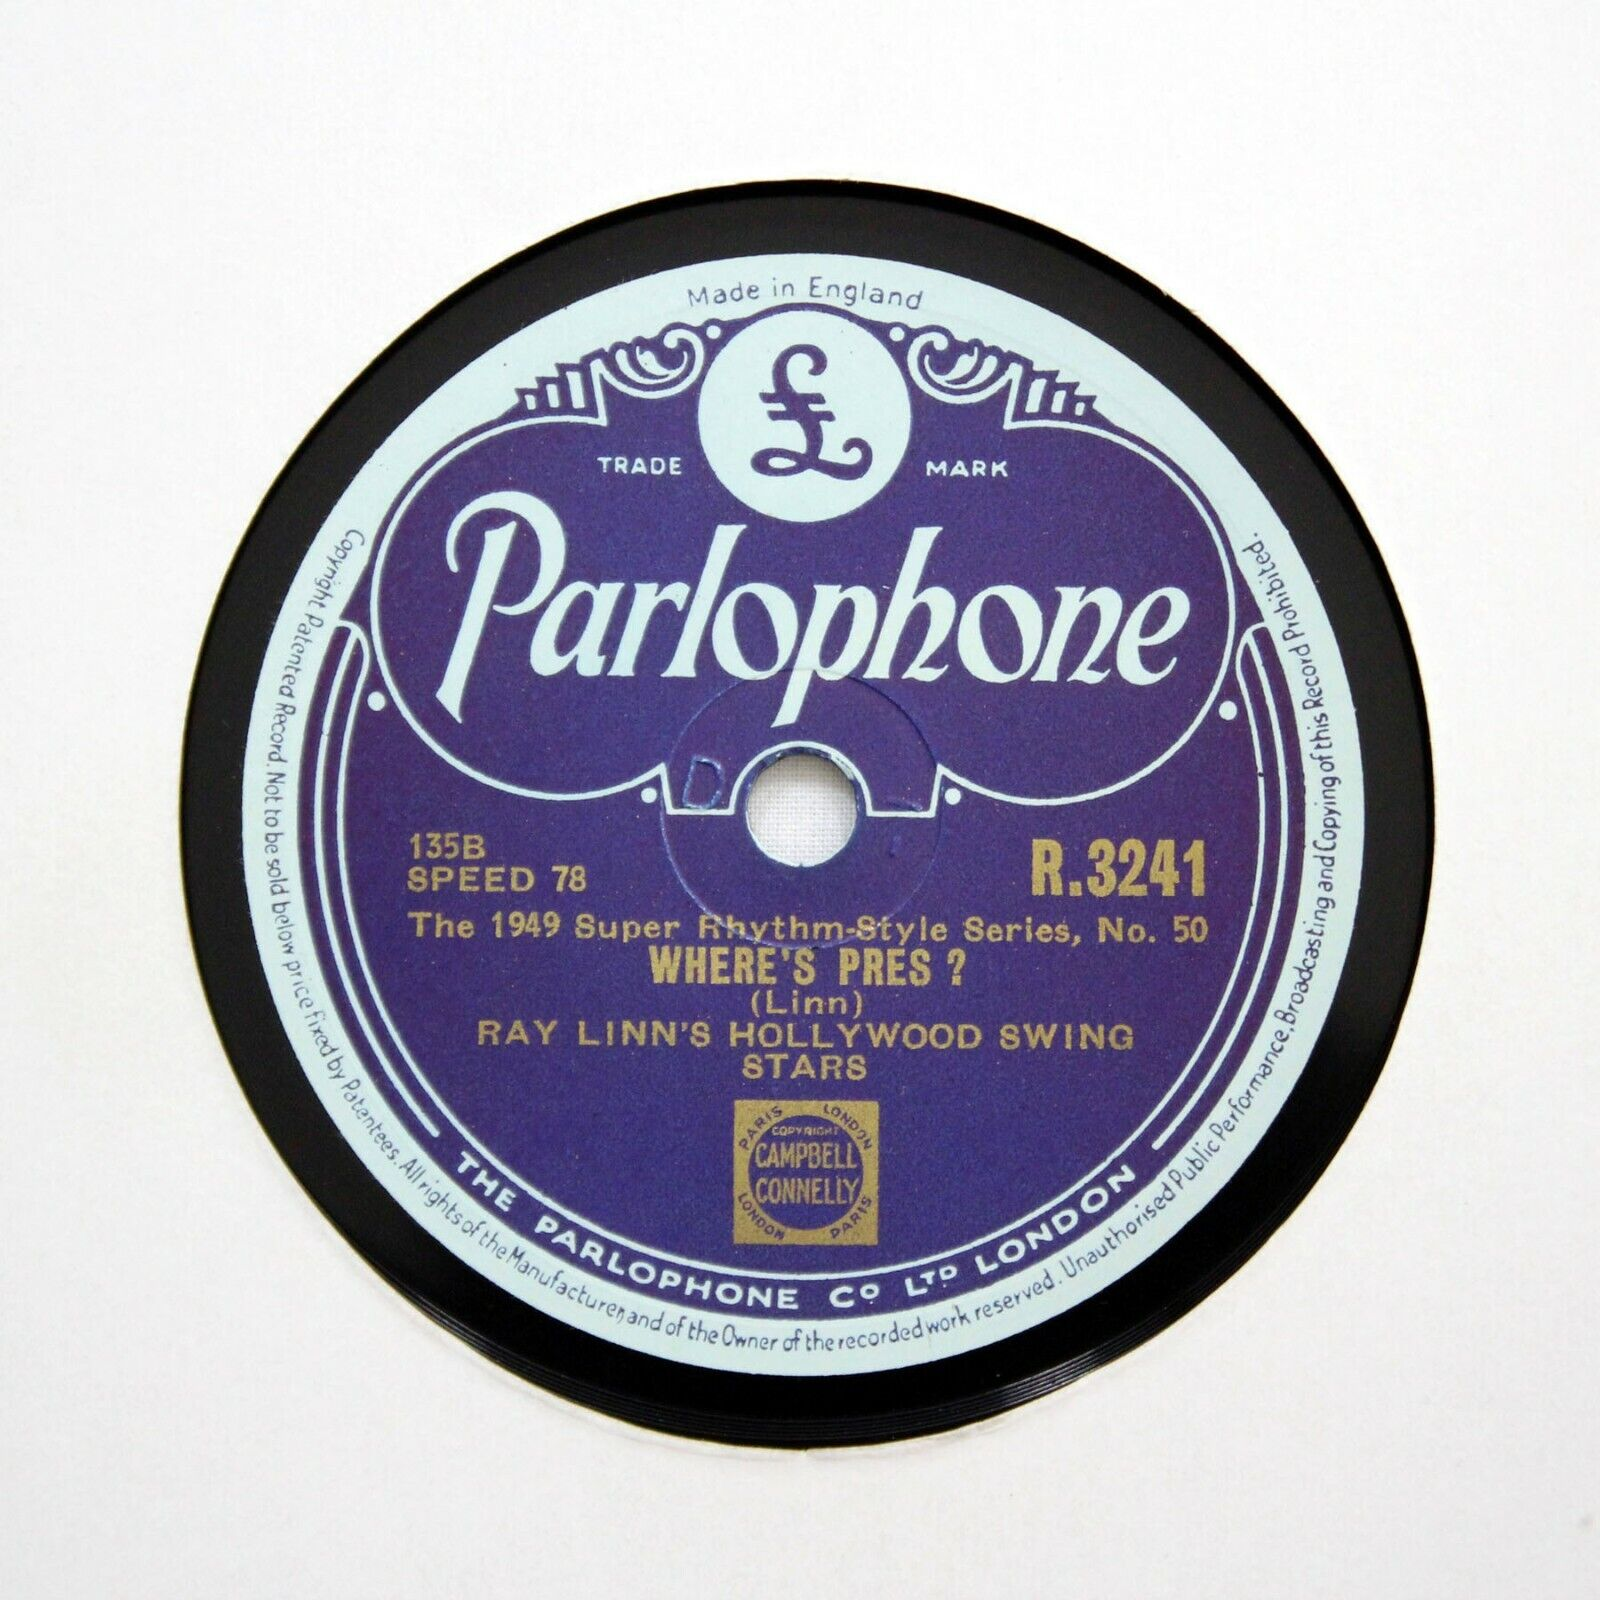 "RAY LINN'S HOLLYWOOD SWING STARS ""Where's Pres?"" (E+) PARLOPHONE R-3241 [78 RPM]"